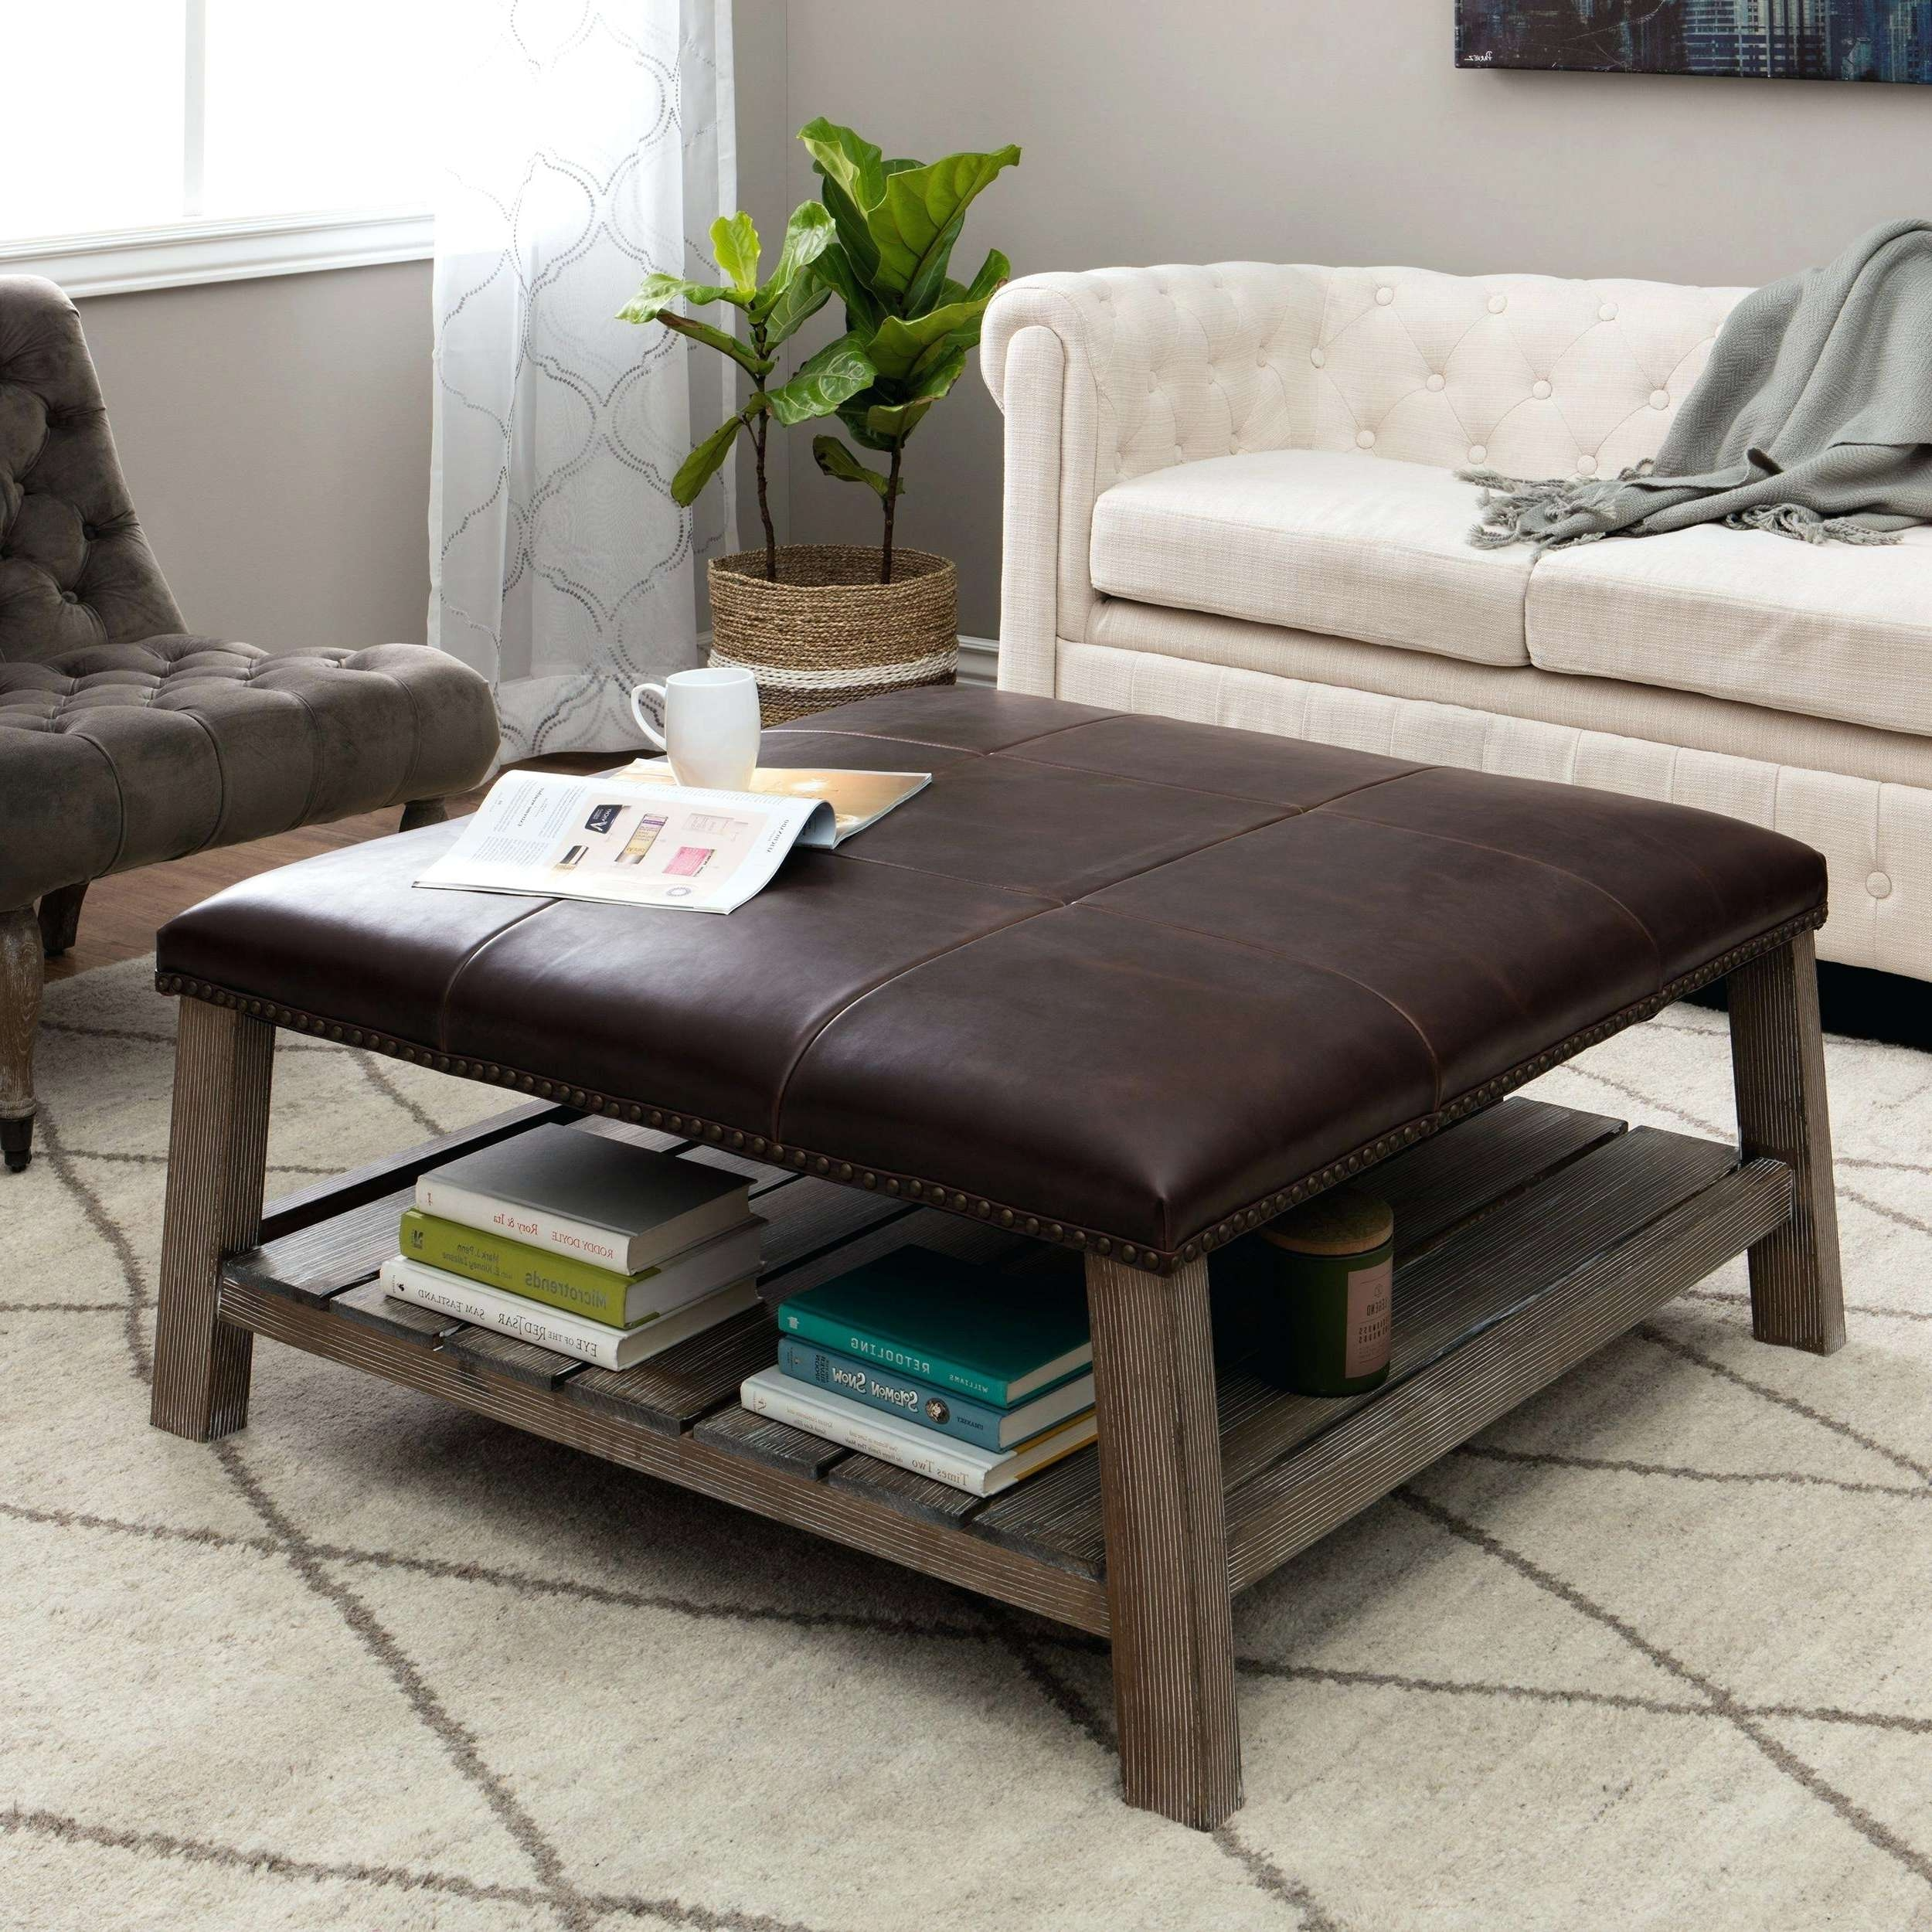 Famous Coffee Table Footrests Pertaining To Coffee Table : Coffee Table Footrest Picture Of With Lift Top (View 10 of 20)